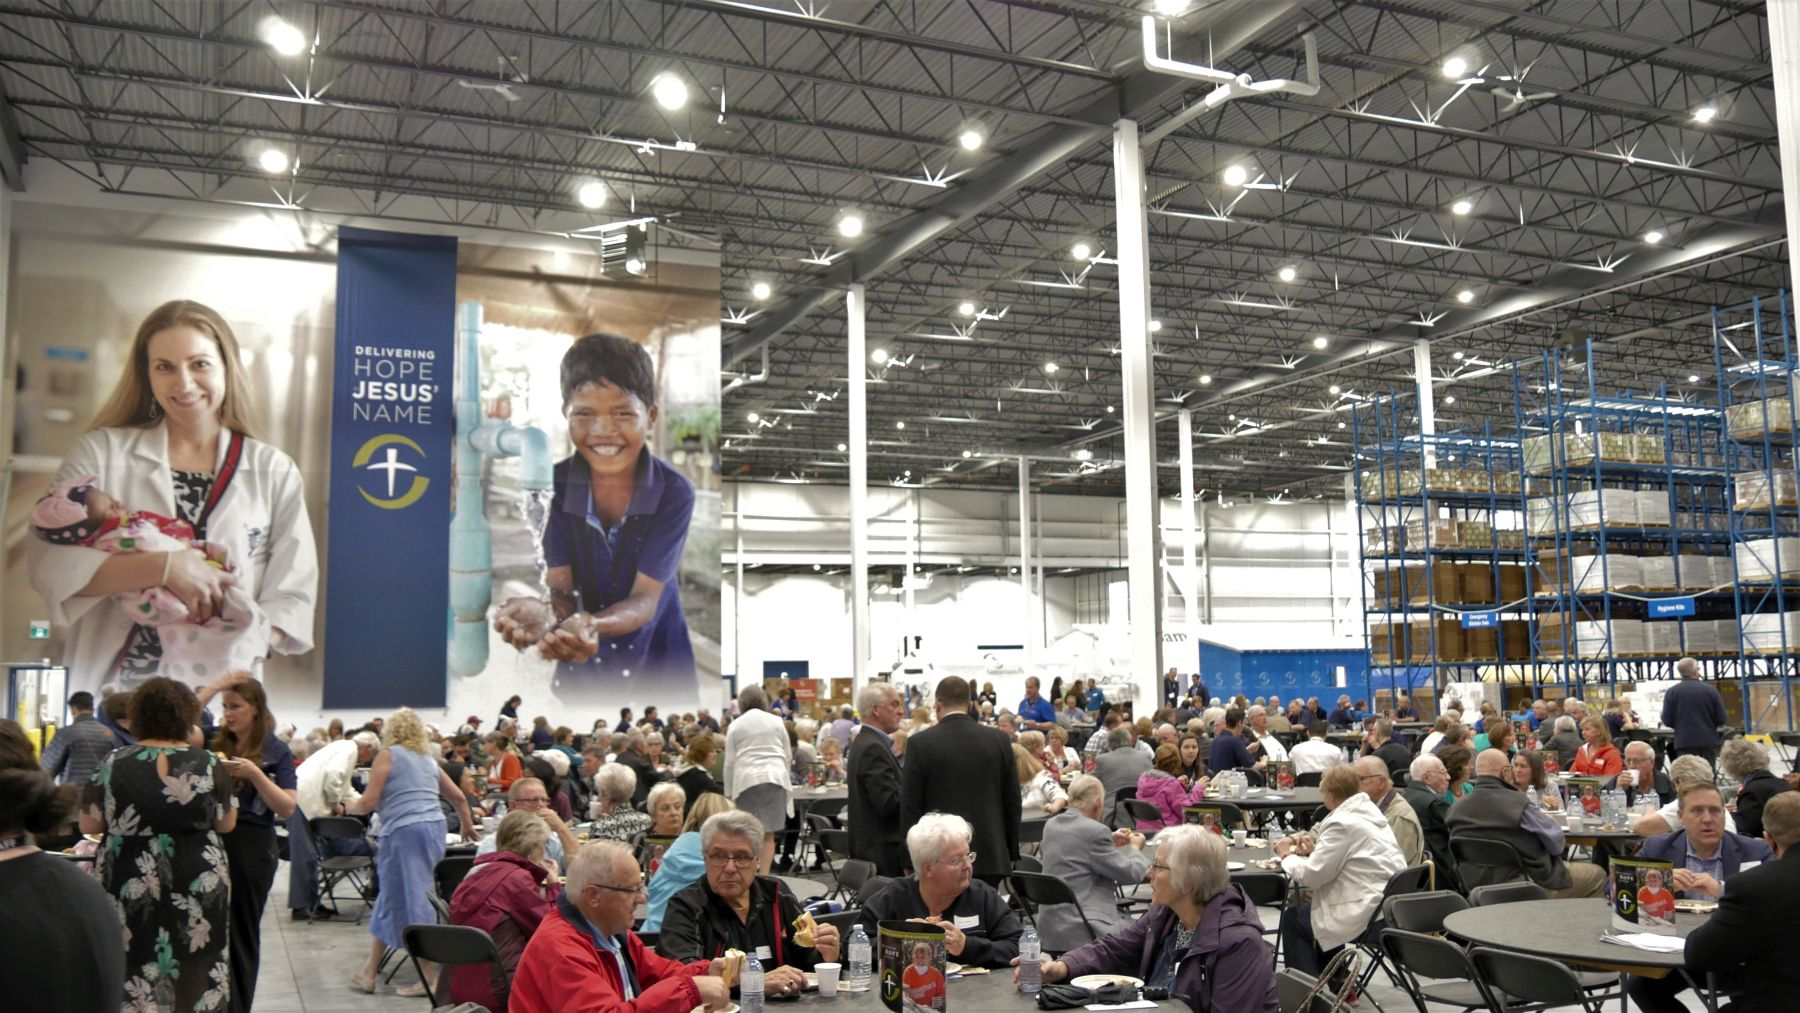 Guests enjoyed a meal at a temporary cafeteria set up in the new warehouse for the dedication and open house.